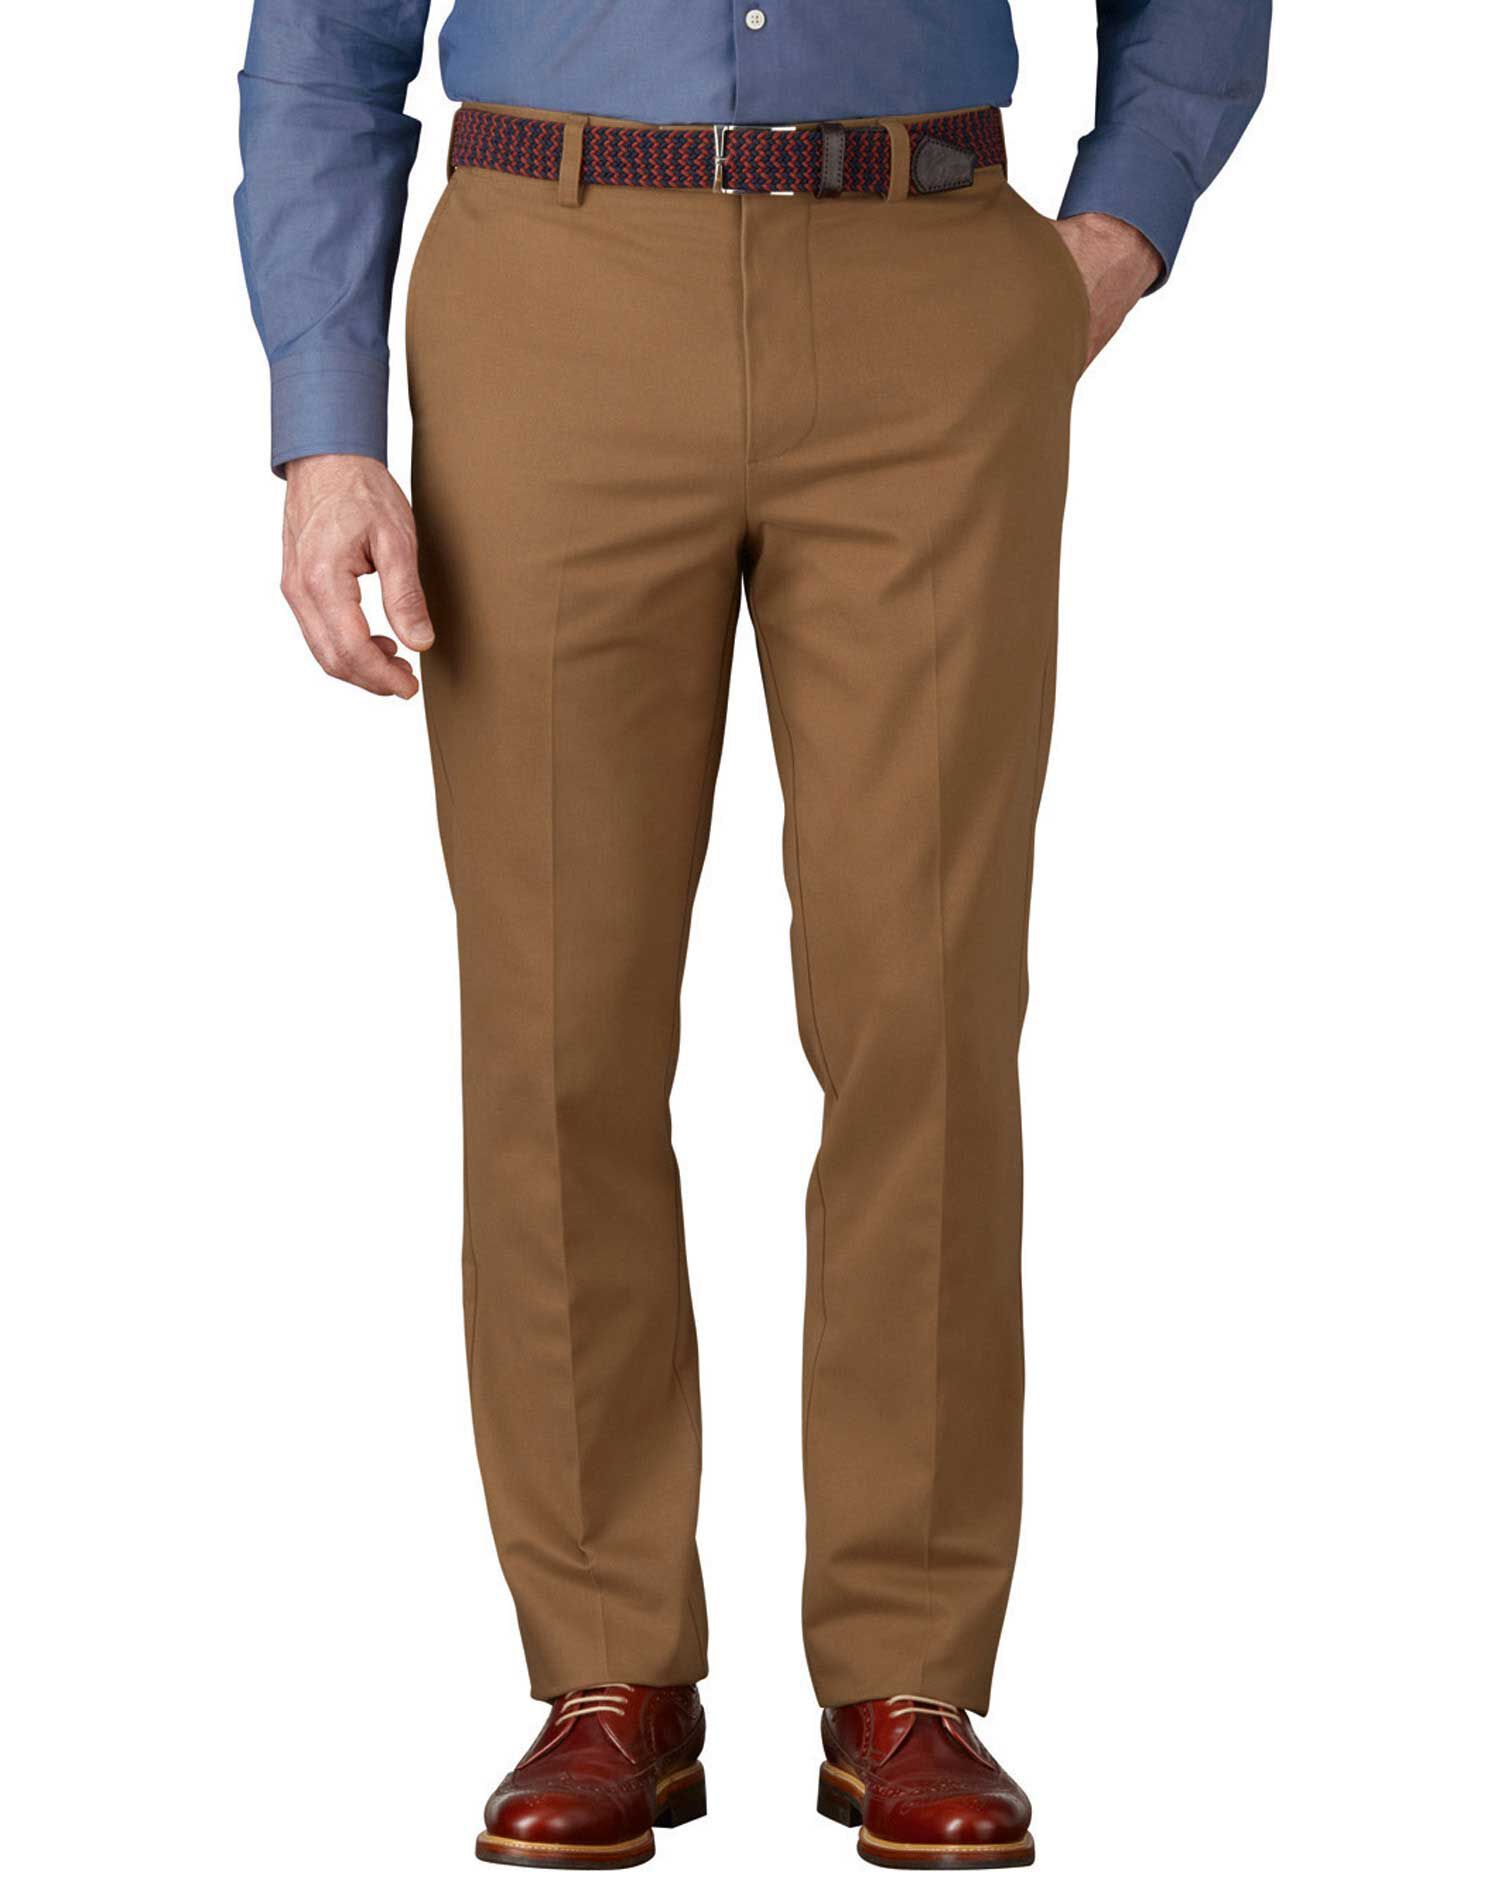 Camel Slim Fit Flat Front Non-Iron Cotton Chino Trousers Size W30 L32 by Charles Tyrwhitt